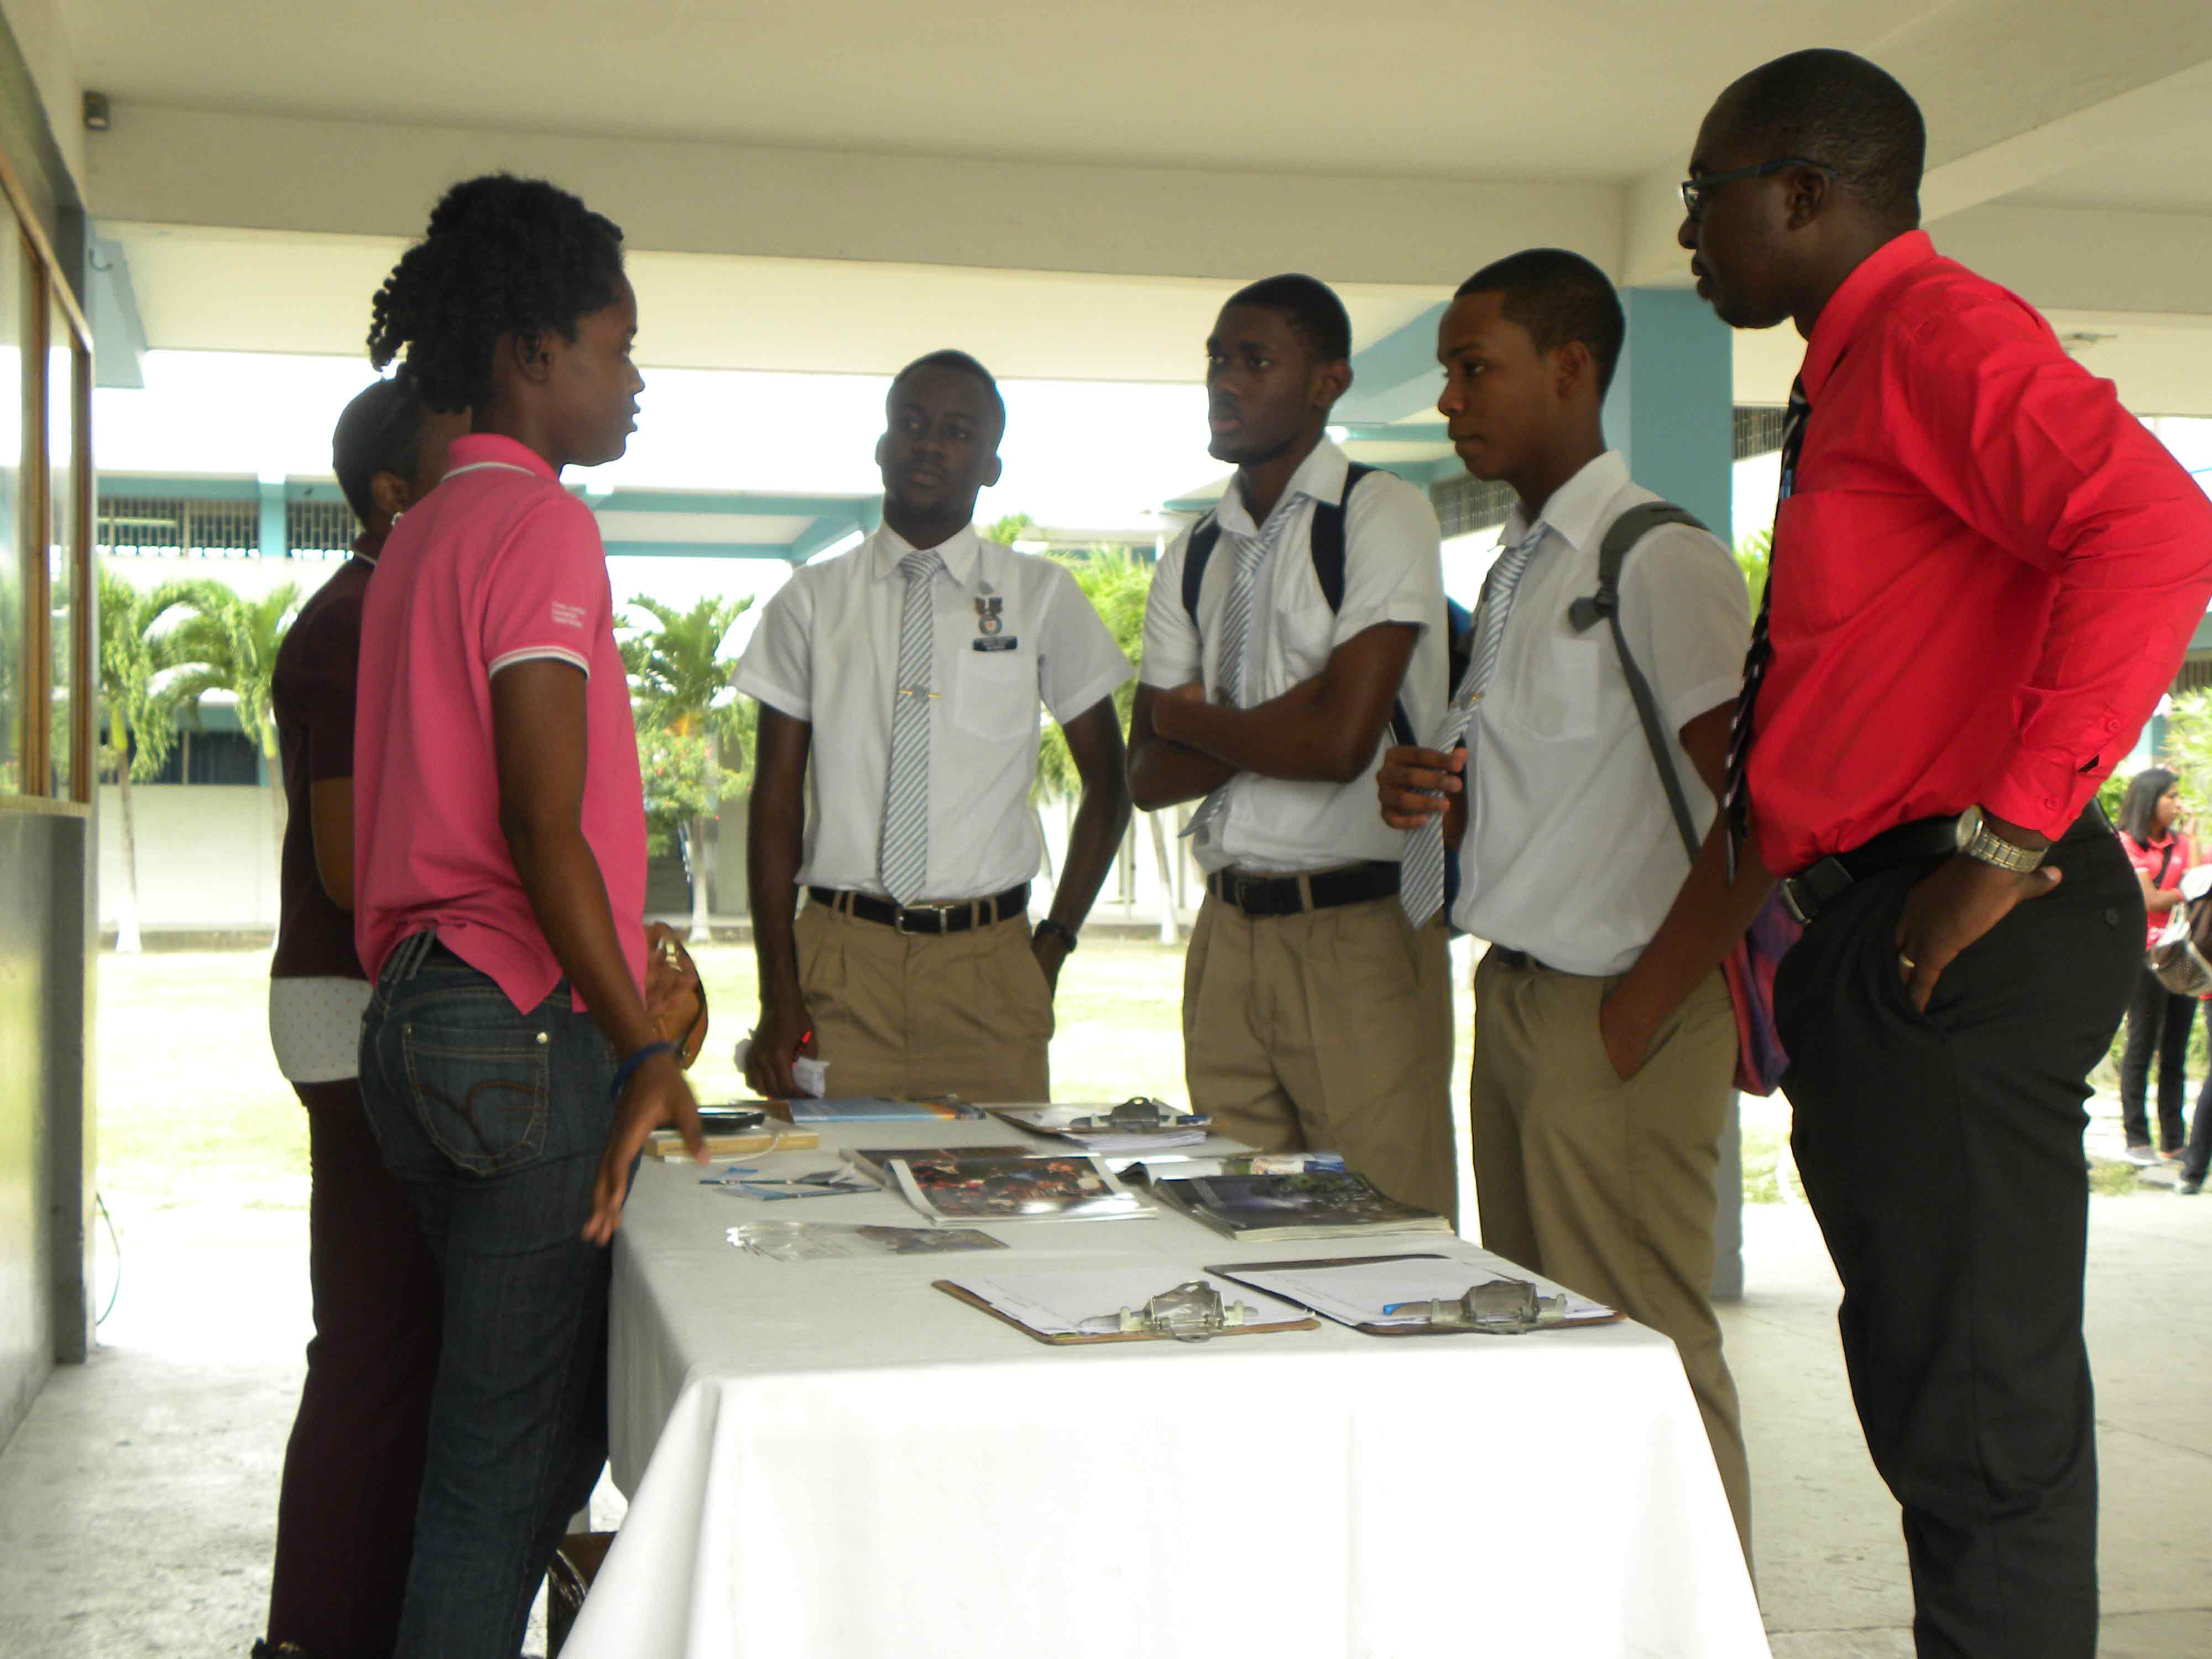 Students flock the promotion table to learn how to join the IYF